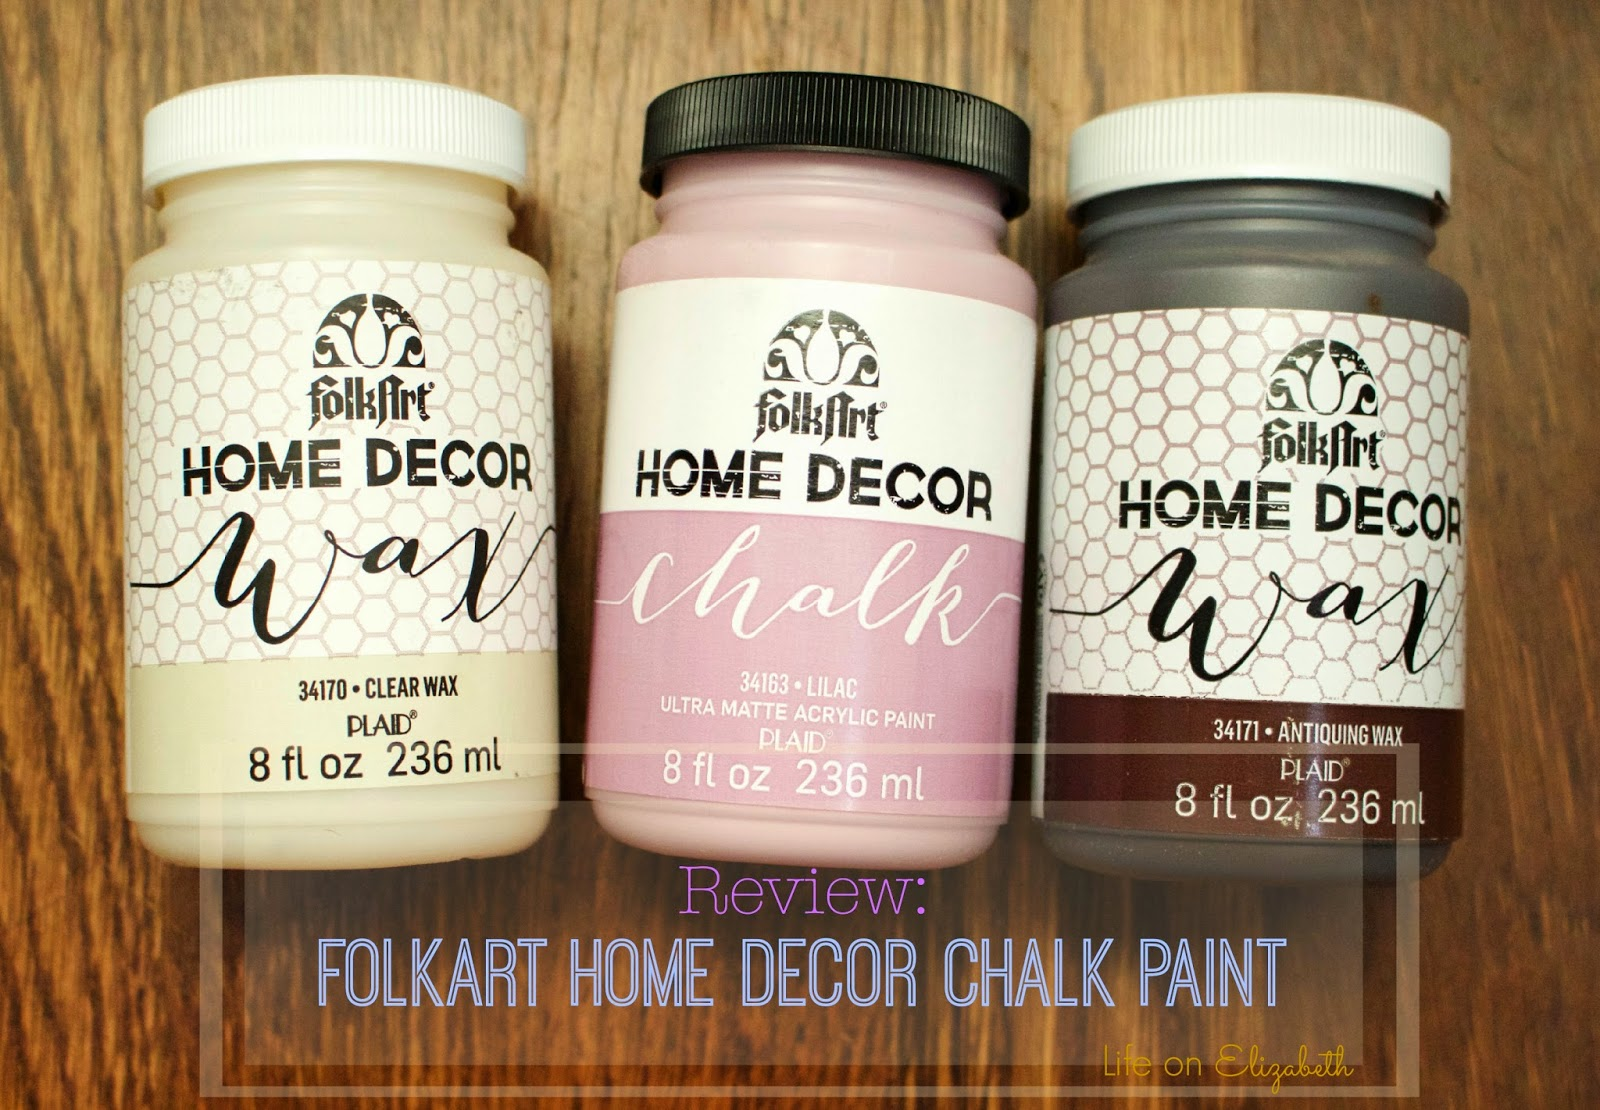 Life on elizabeth 39 folkart home decor chalk 39 paint review for Home decorators reviews